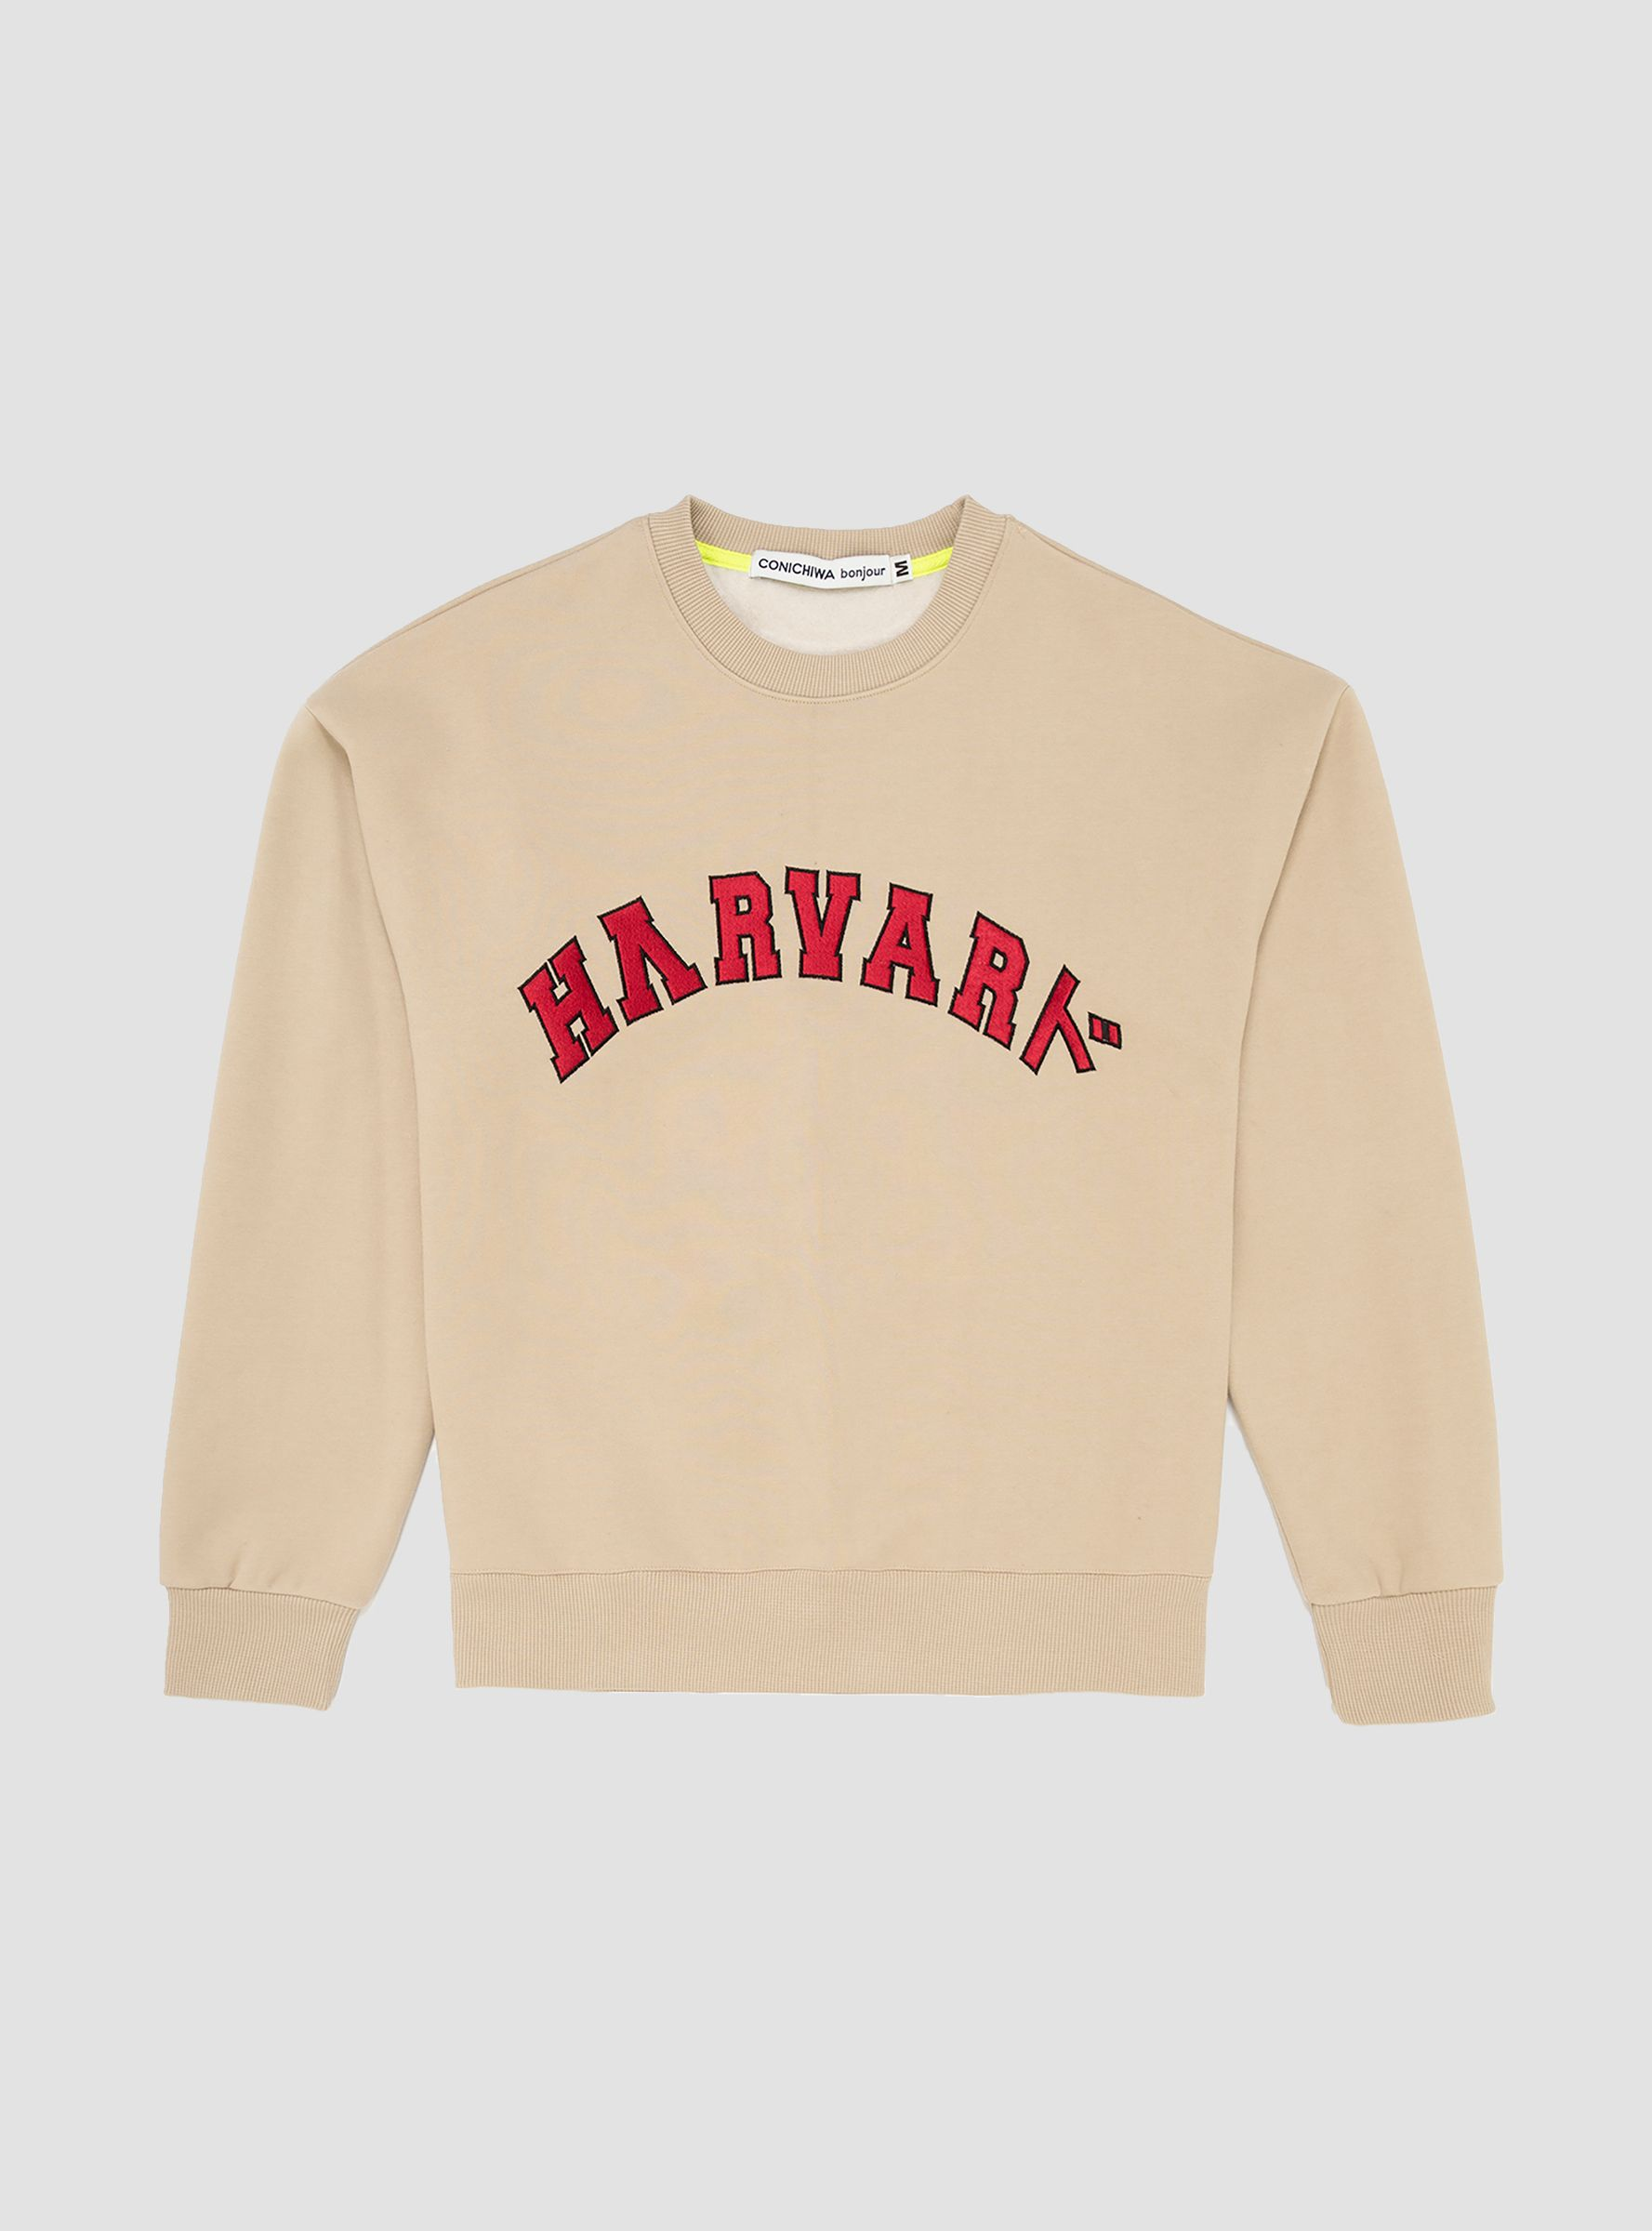 Conichiwa Bonjour sweatshirt atCouverture & The Garbstore - £87 - Dressing down was never so easy, or so cool. Why opt for a plain grey sweatshirt when you can have a much cooler one like this instead?